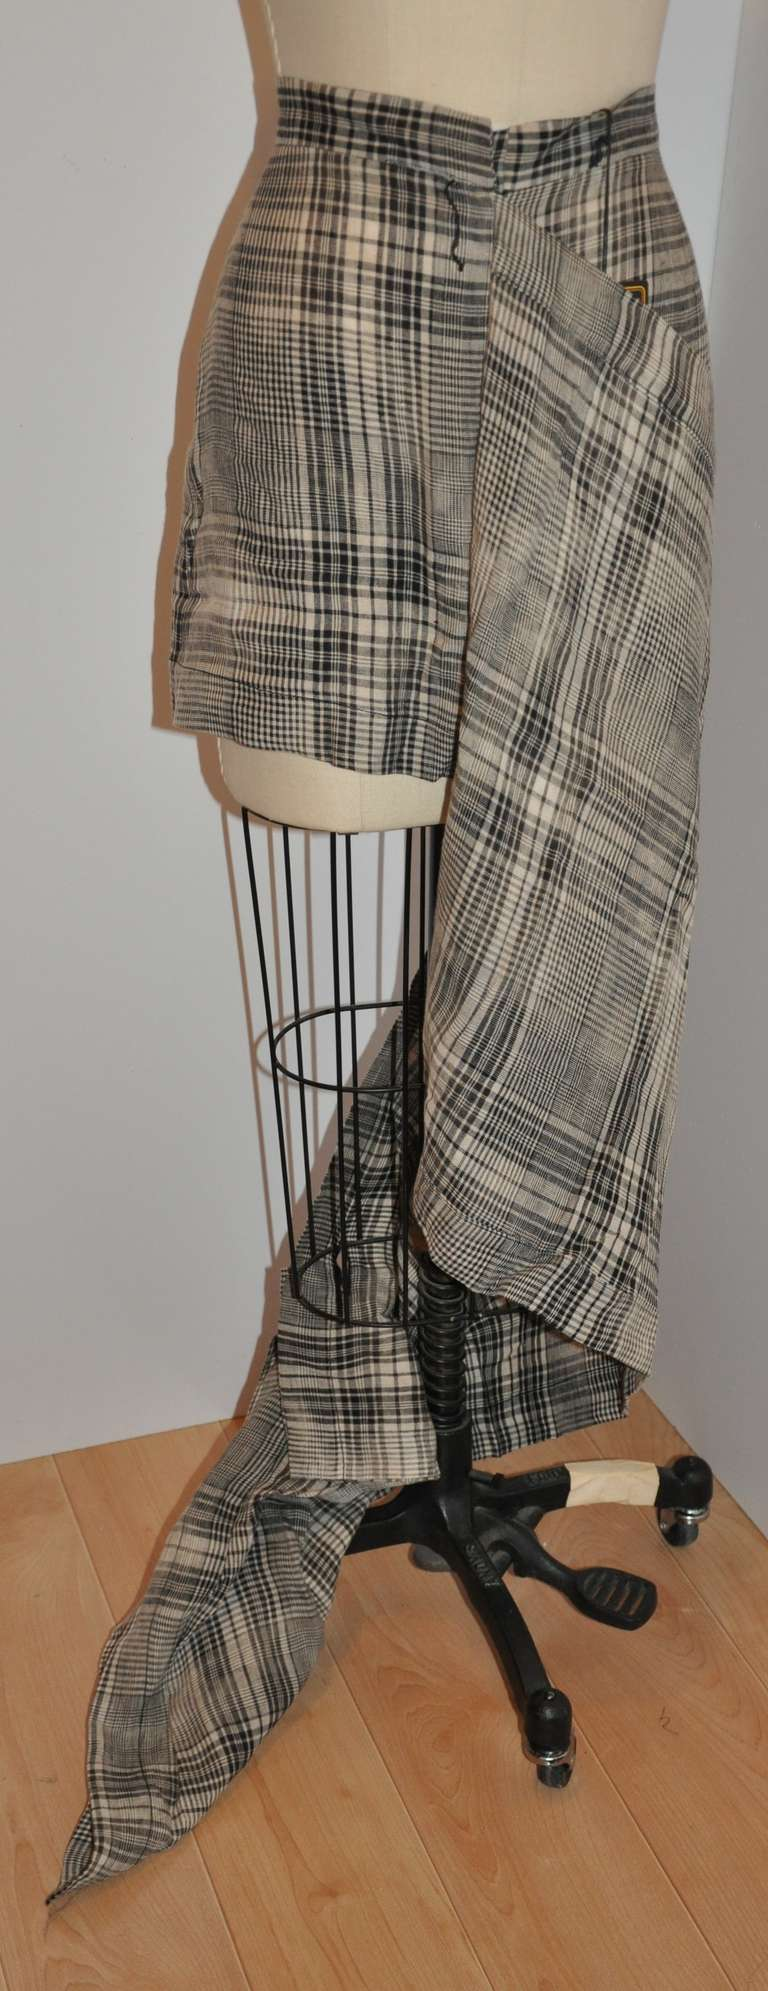 """Vivienne Westwood deconstructed black & white plaid skirt measures 15 1/2"""" in length on the actual skirt. The covering over-skirt measures 23 1/4"""". When the over-skirt is opened and laid flat, it measures 45"""" x 23 1/4"""", zipper is 6 1/4"""", waist is"""